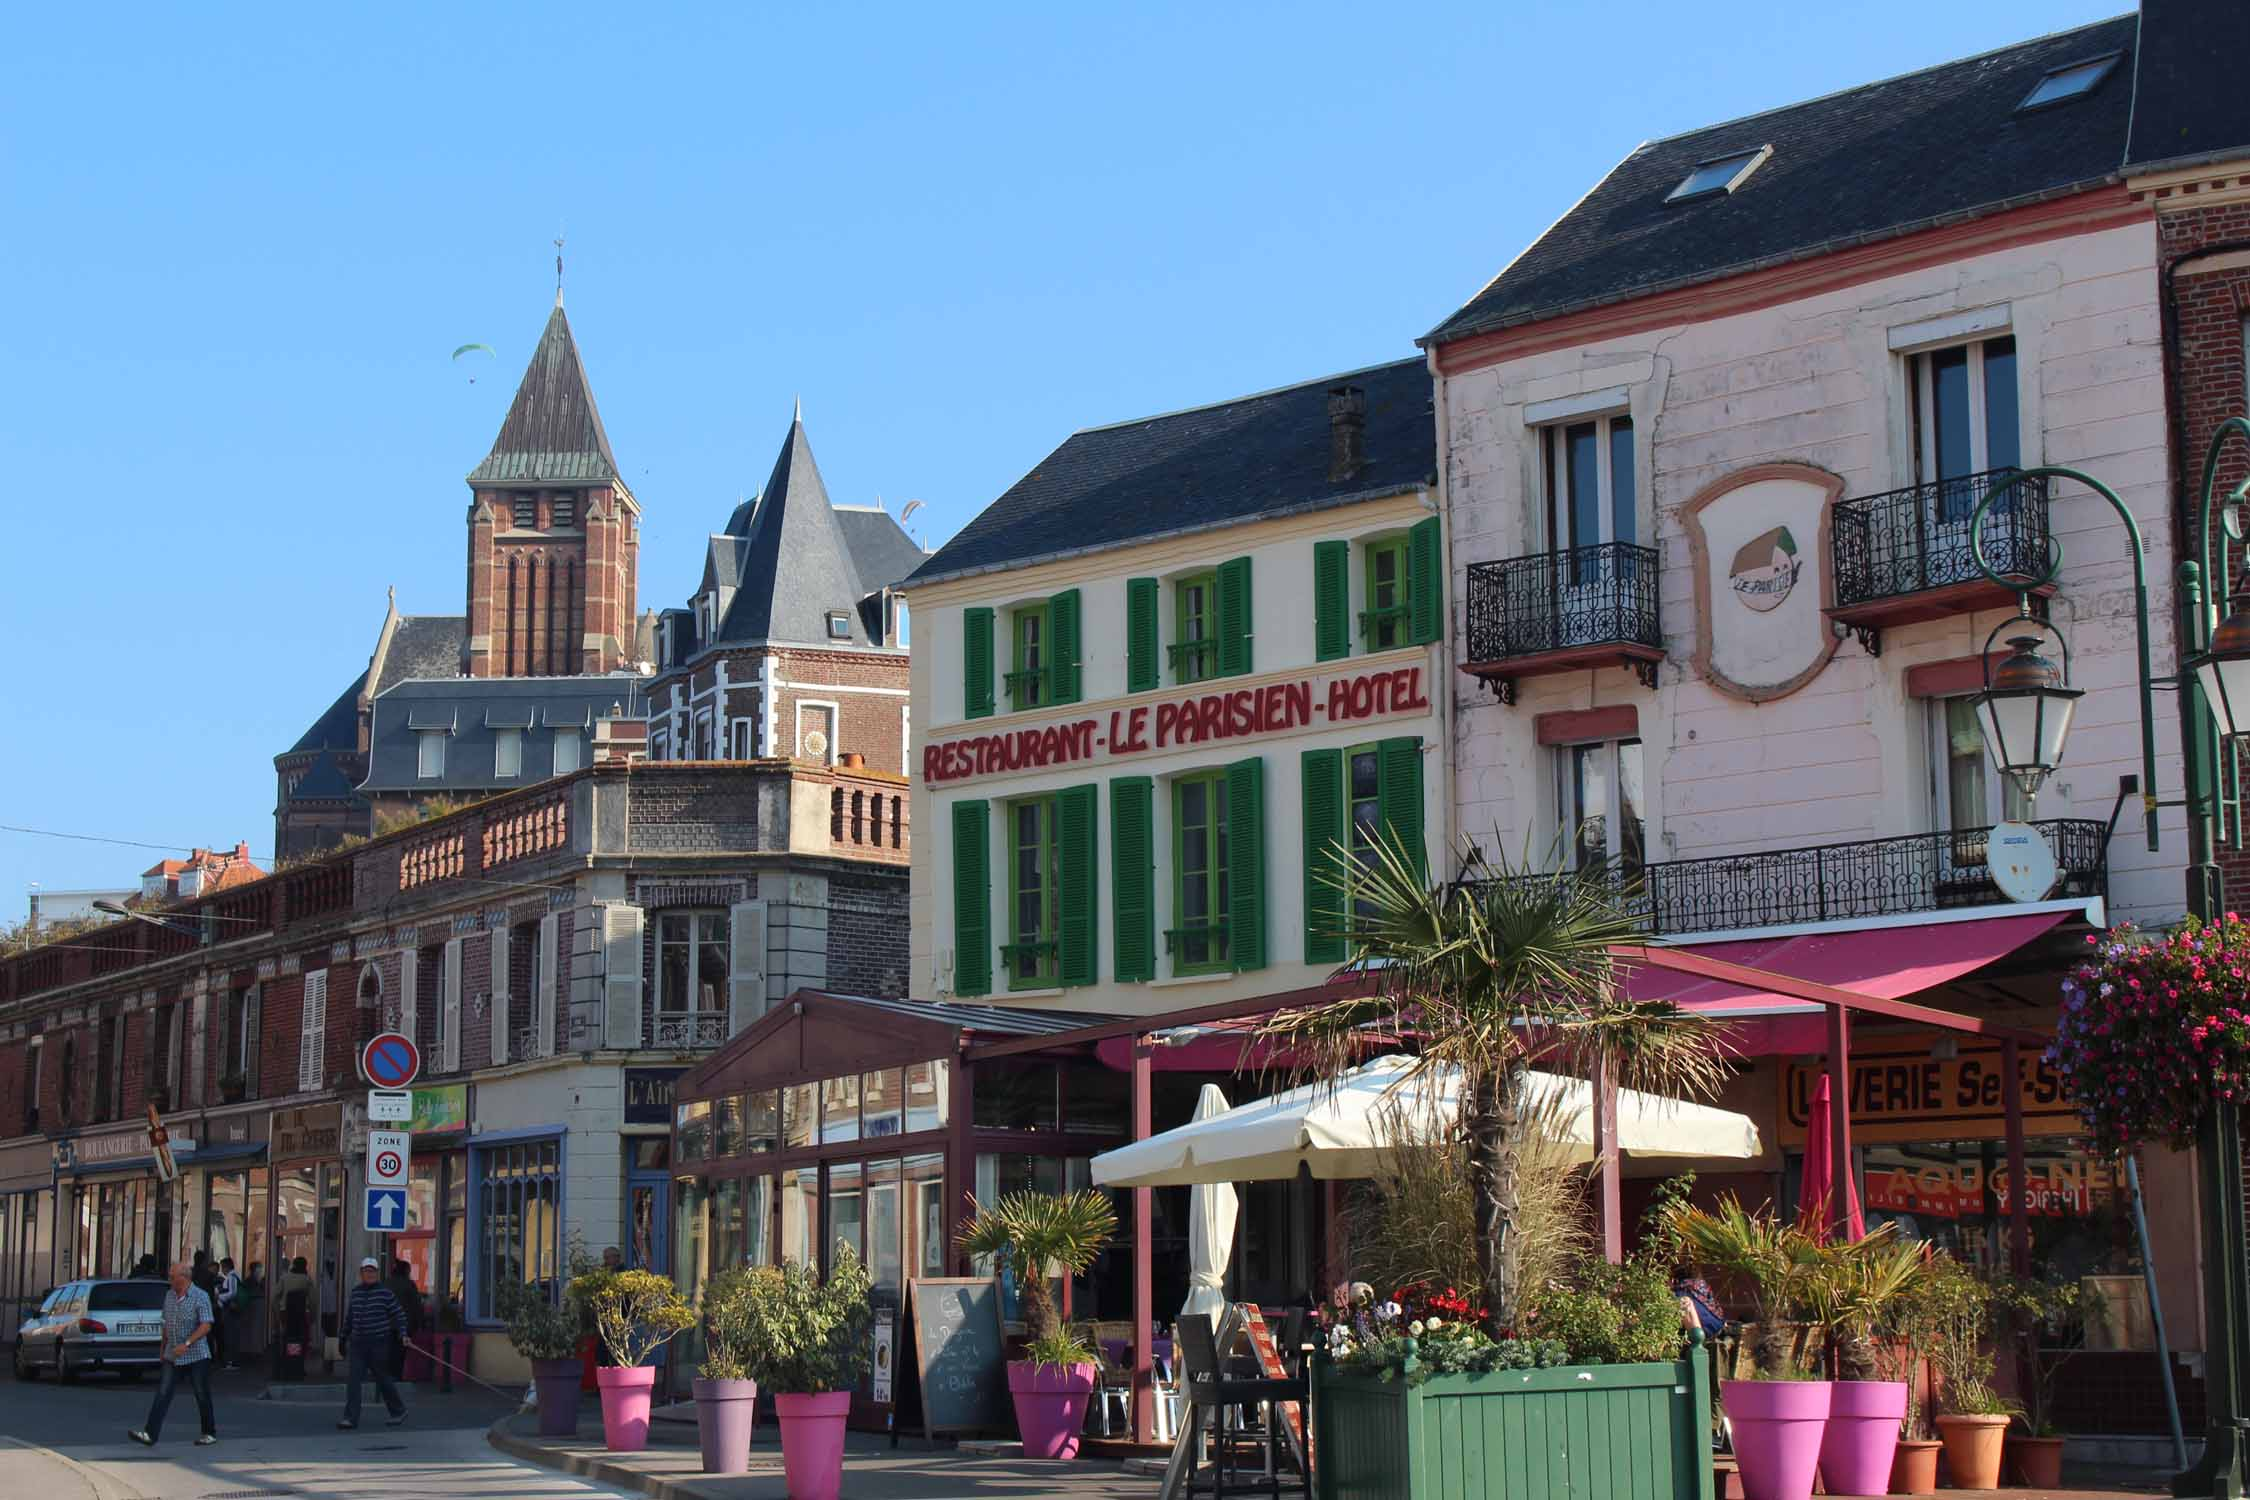 Mers-les-Bains, Normandy